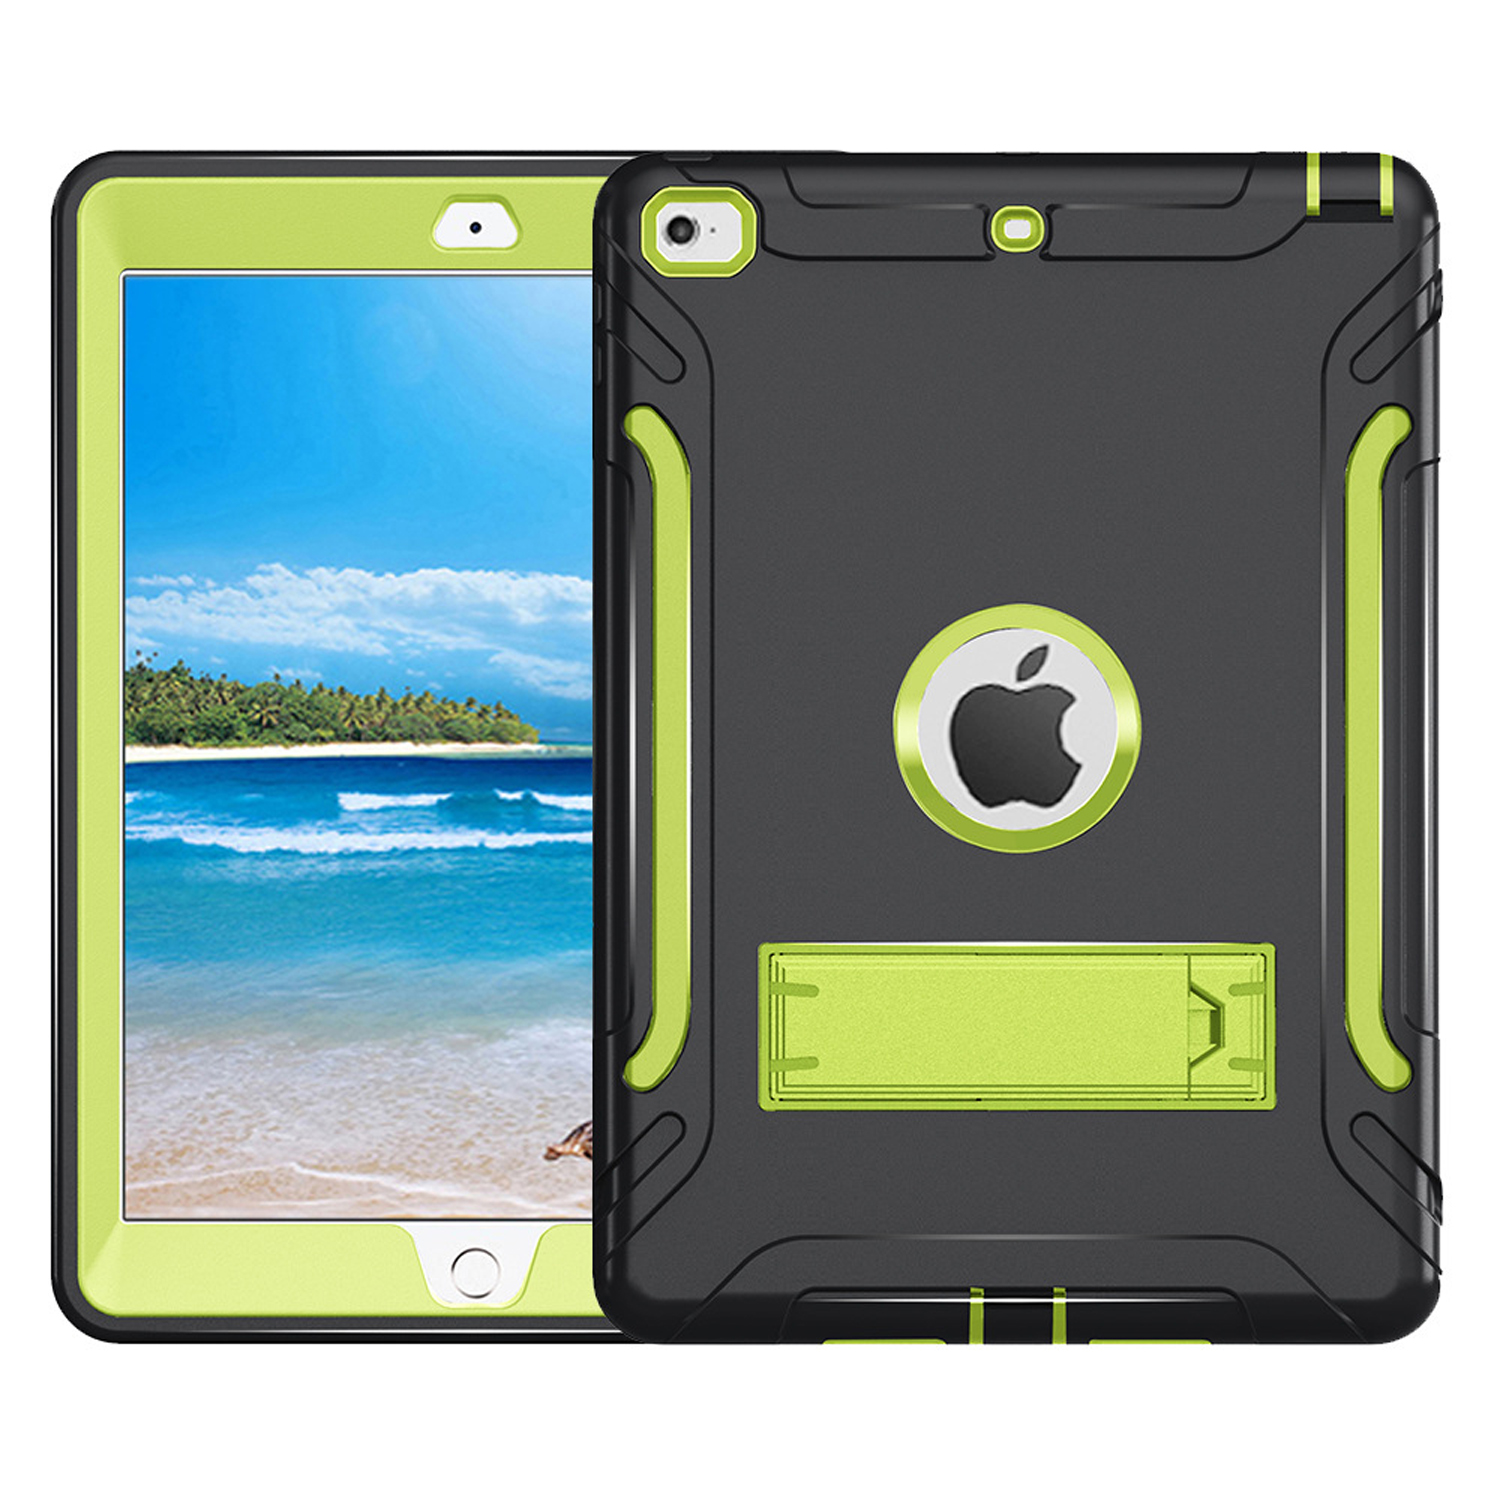 Dteck New iPad 9.72017 / 2018 Case, Heavy Duty Kickstand Shockproof Protective Case Cover For iPad Model A1822 A1823